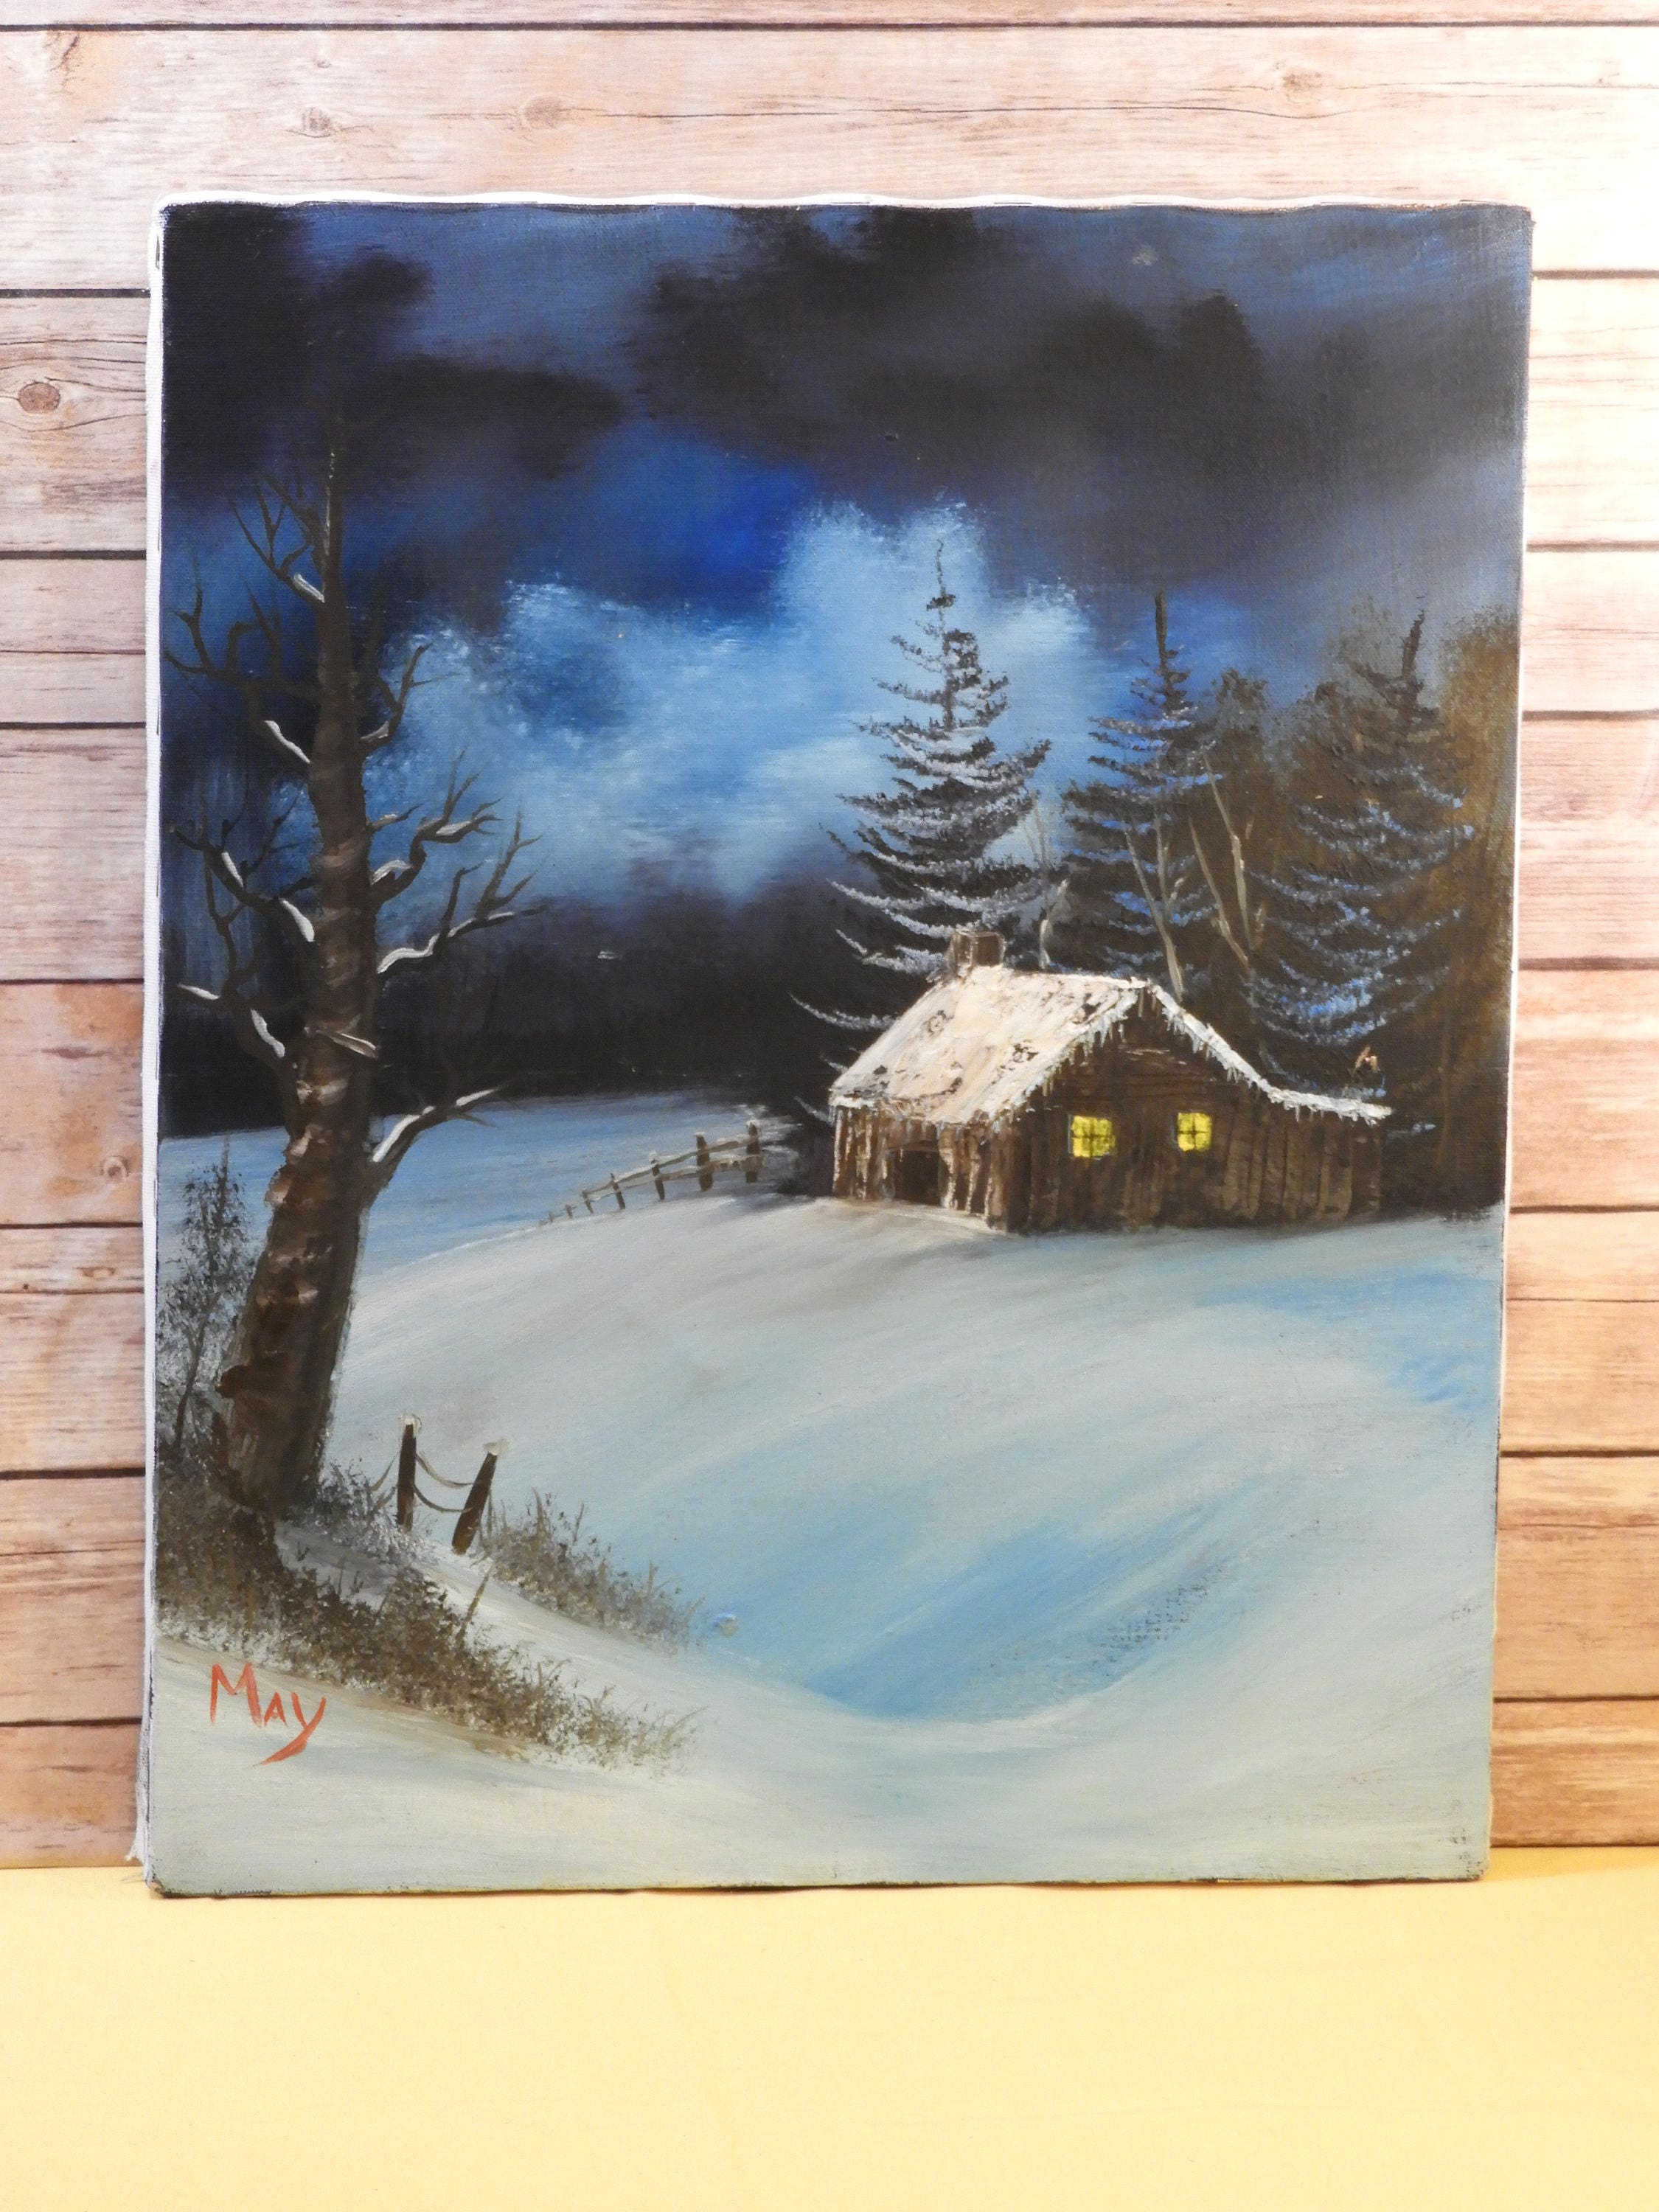 Vintage Winter Night Oil Painting Decorative Blue White Picture On Canvas Signed By MayCabin In ArtMidnight Art